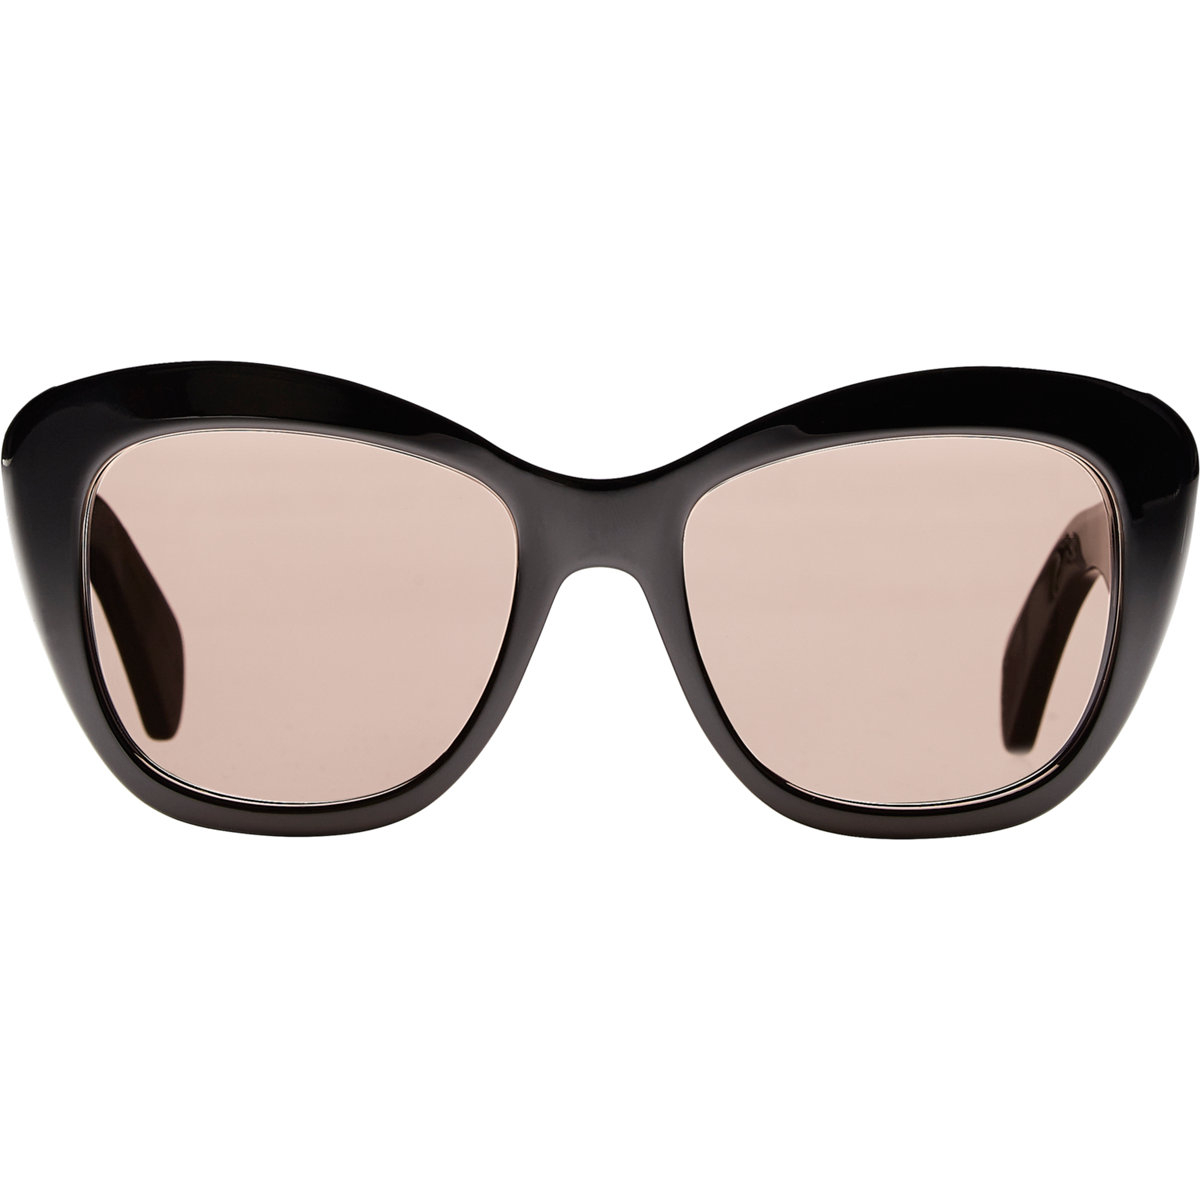 Oliver peoples Women's Emmy Sunglasses in Black